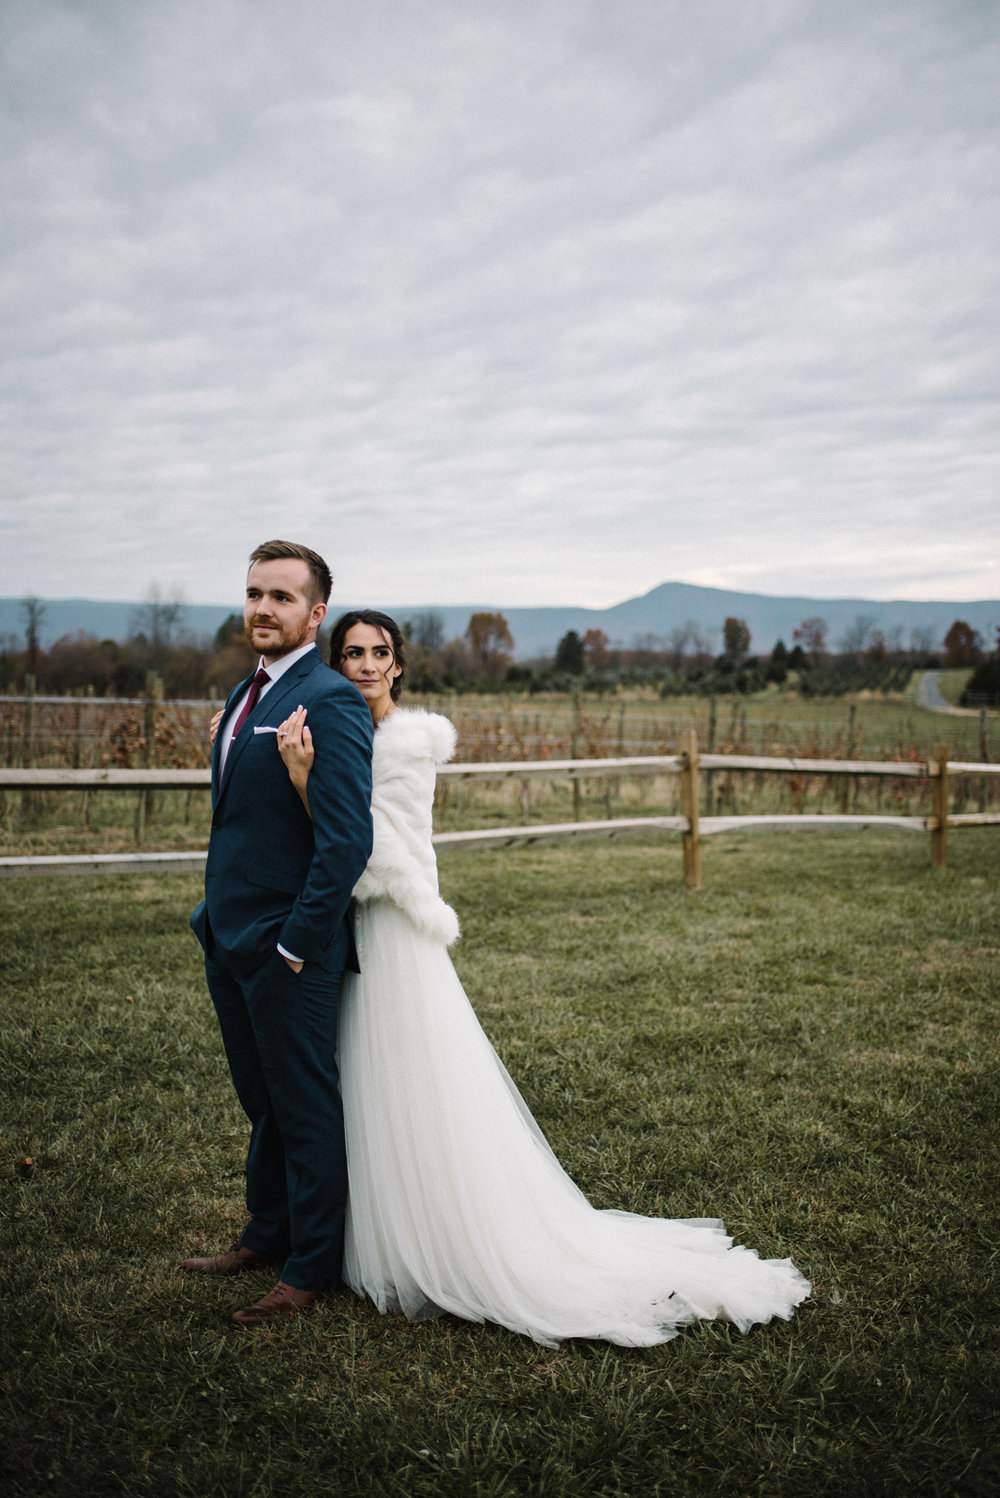 Alyssa and Jesse Winter Vineyard Wedding Luray Virginia Shenandoah Valley Faithbrooke_66.JPG